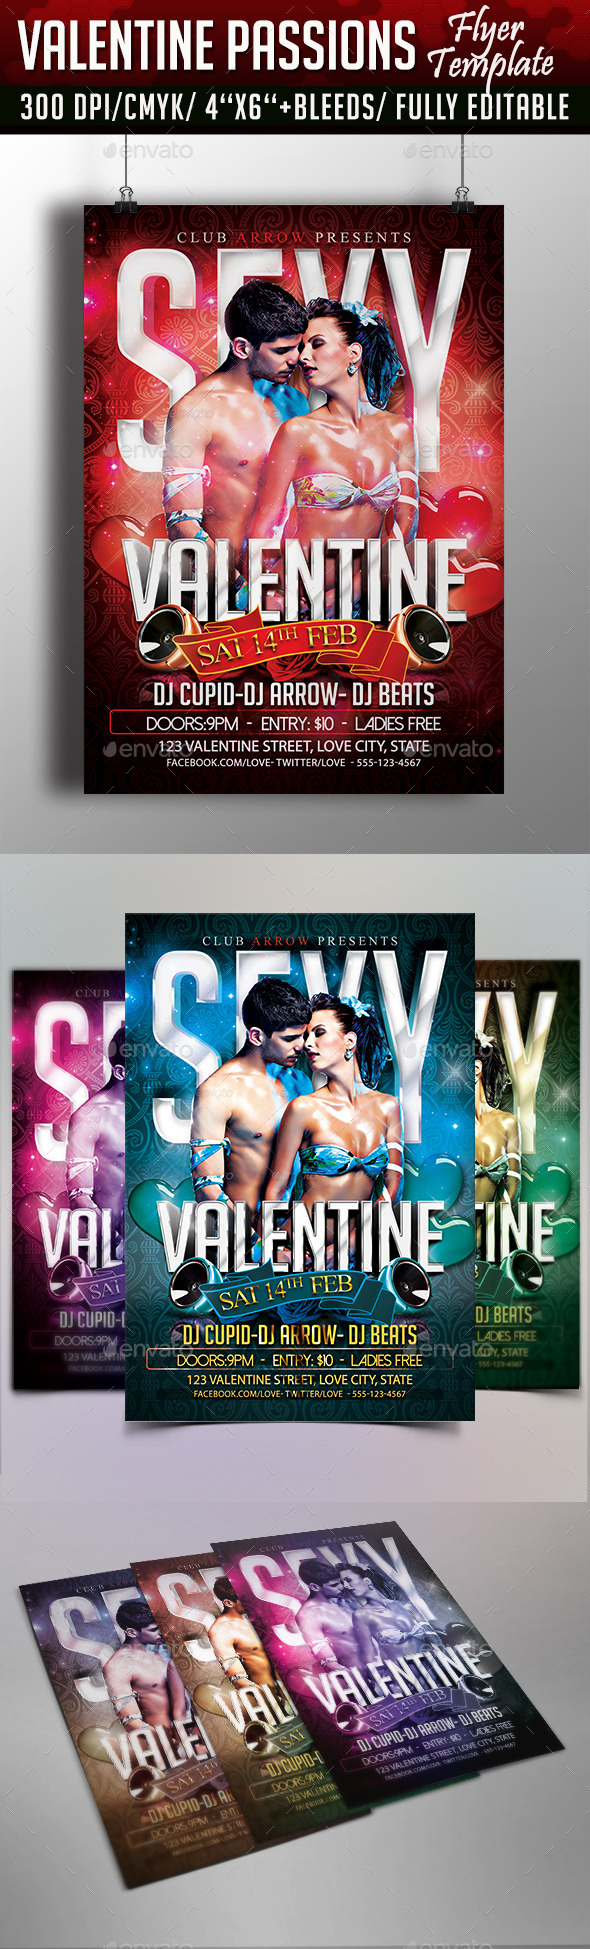 Valentine Passions Flyer Template